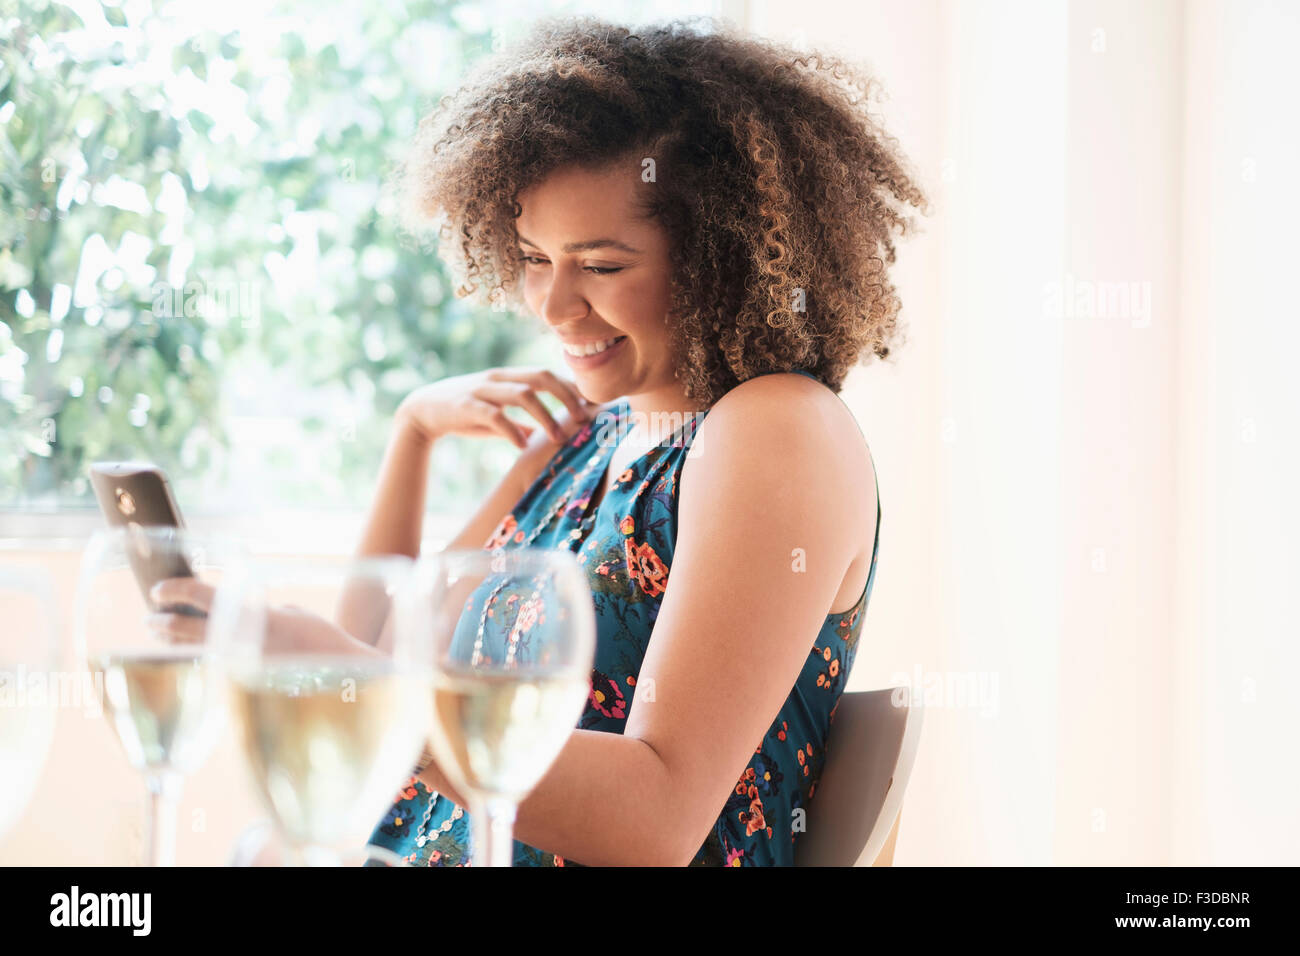 Young woman using smart phone at restaurant Photo Stock